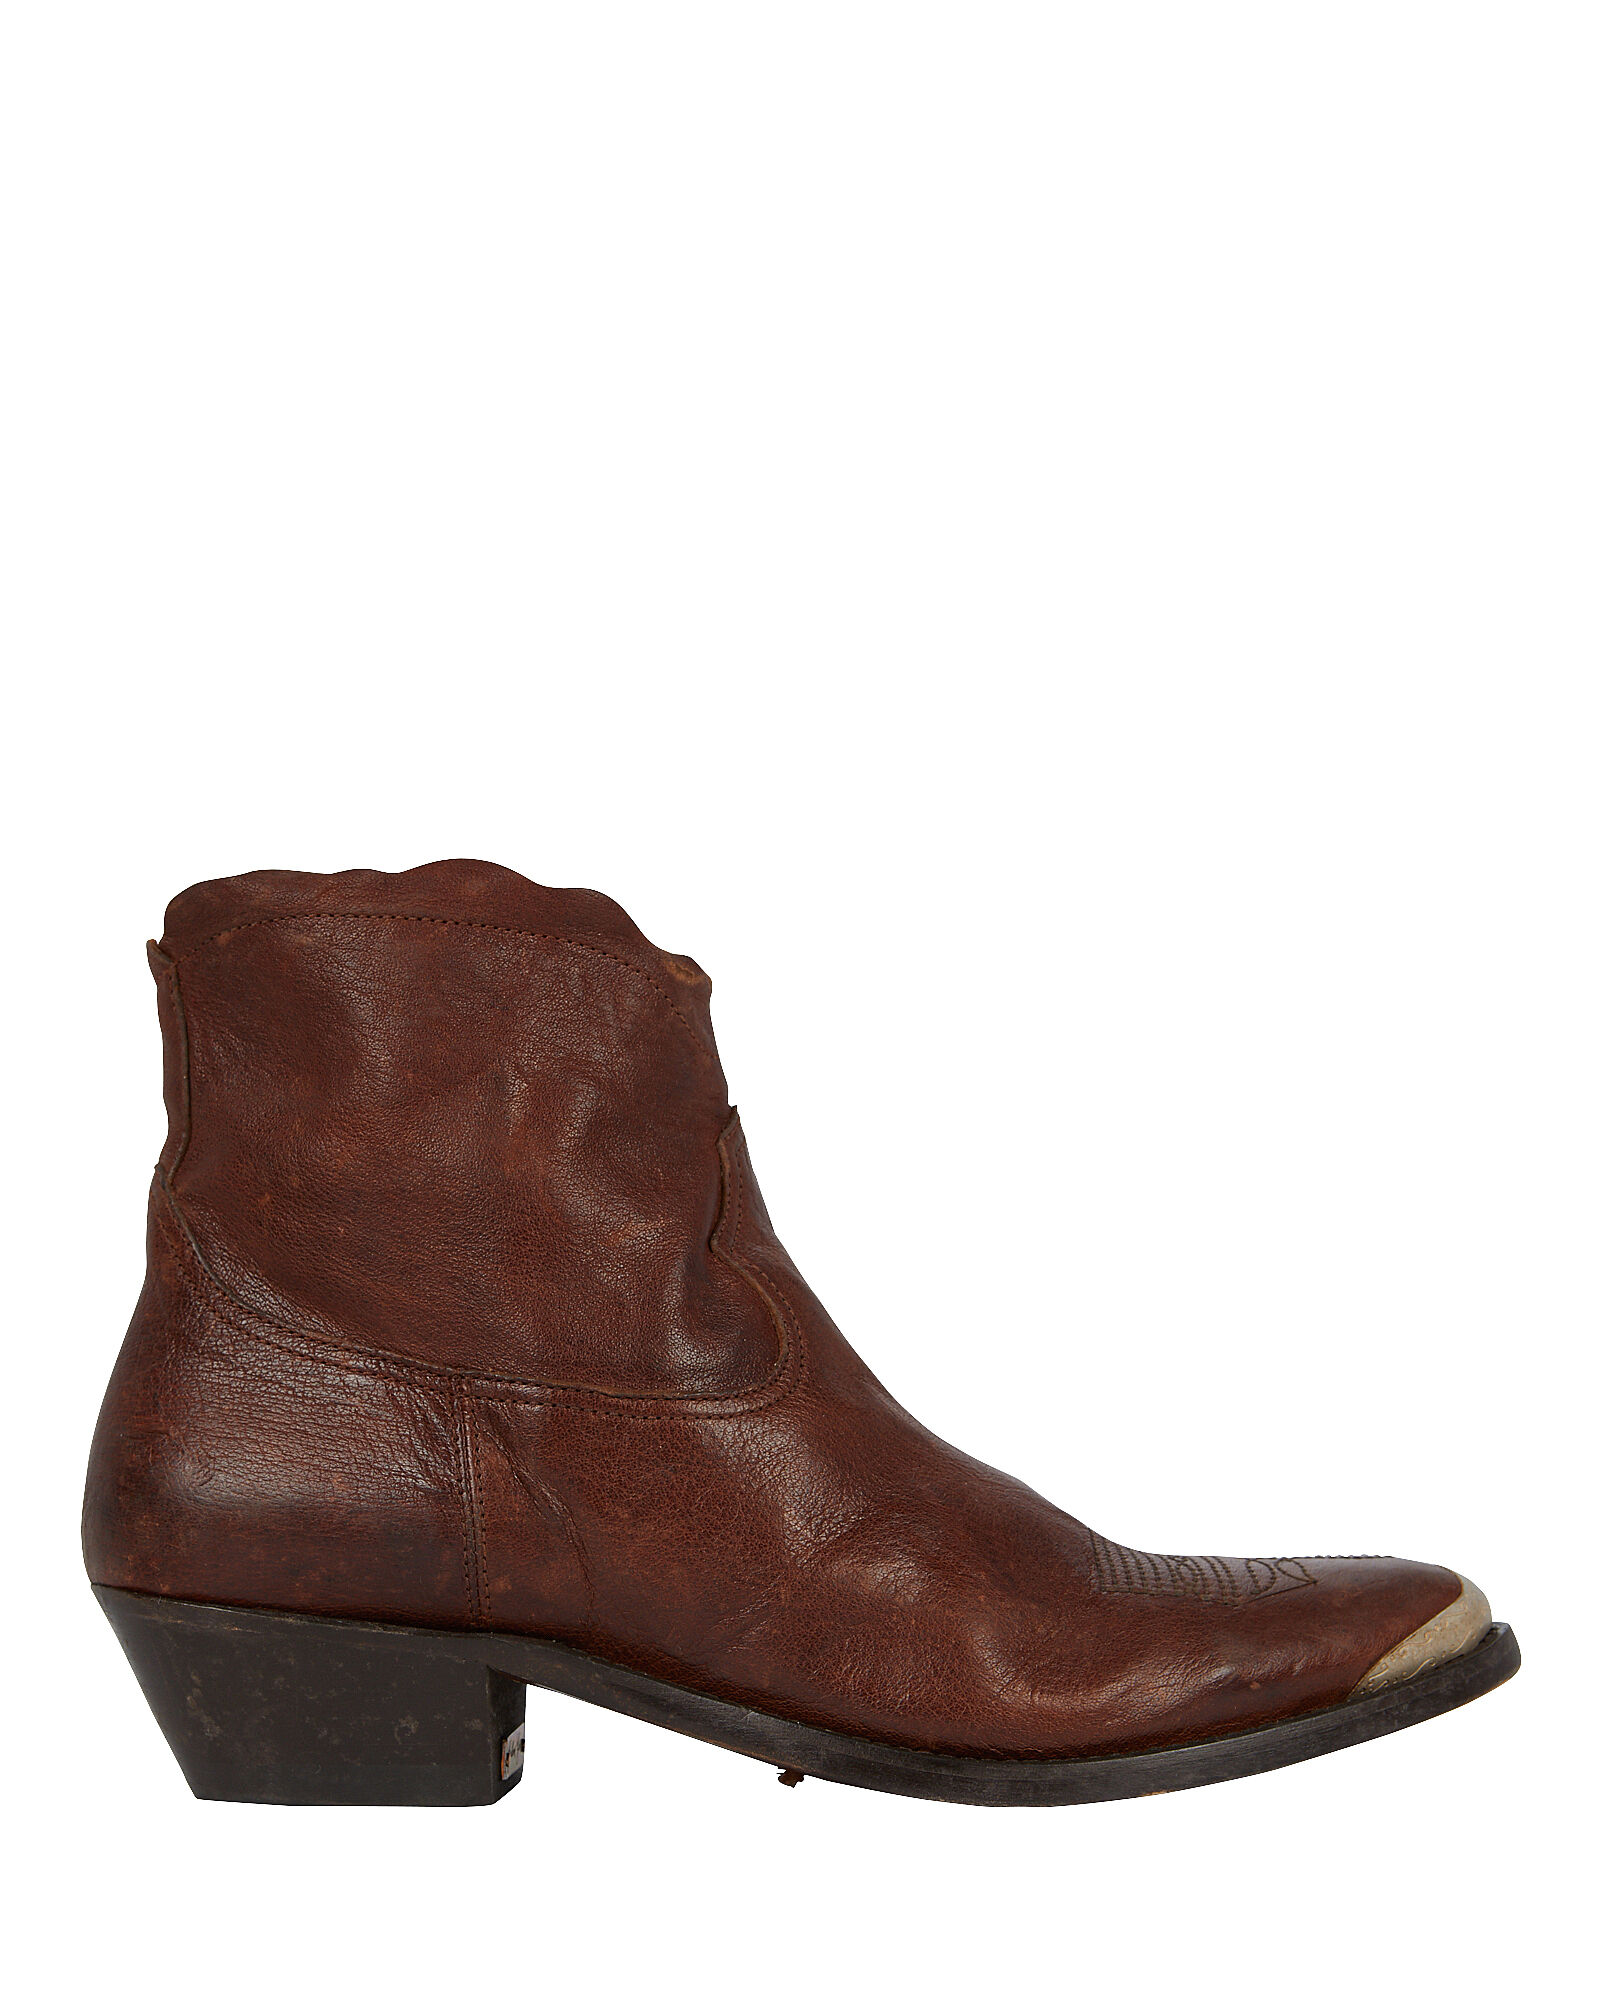 Young Leather Western Booties, BROWN, hi-res